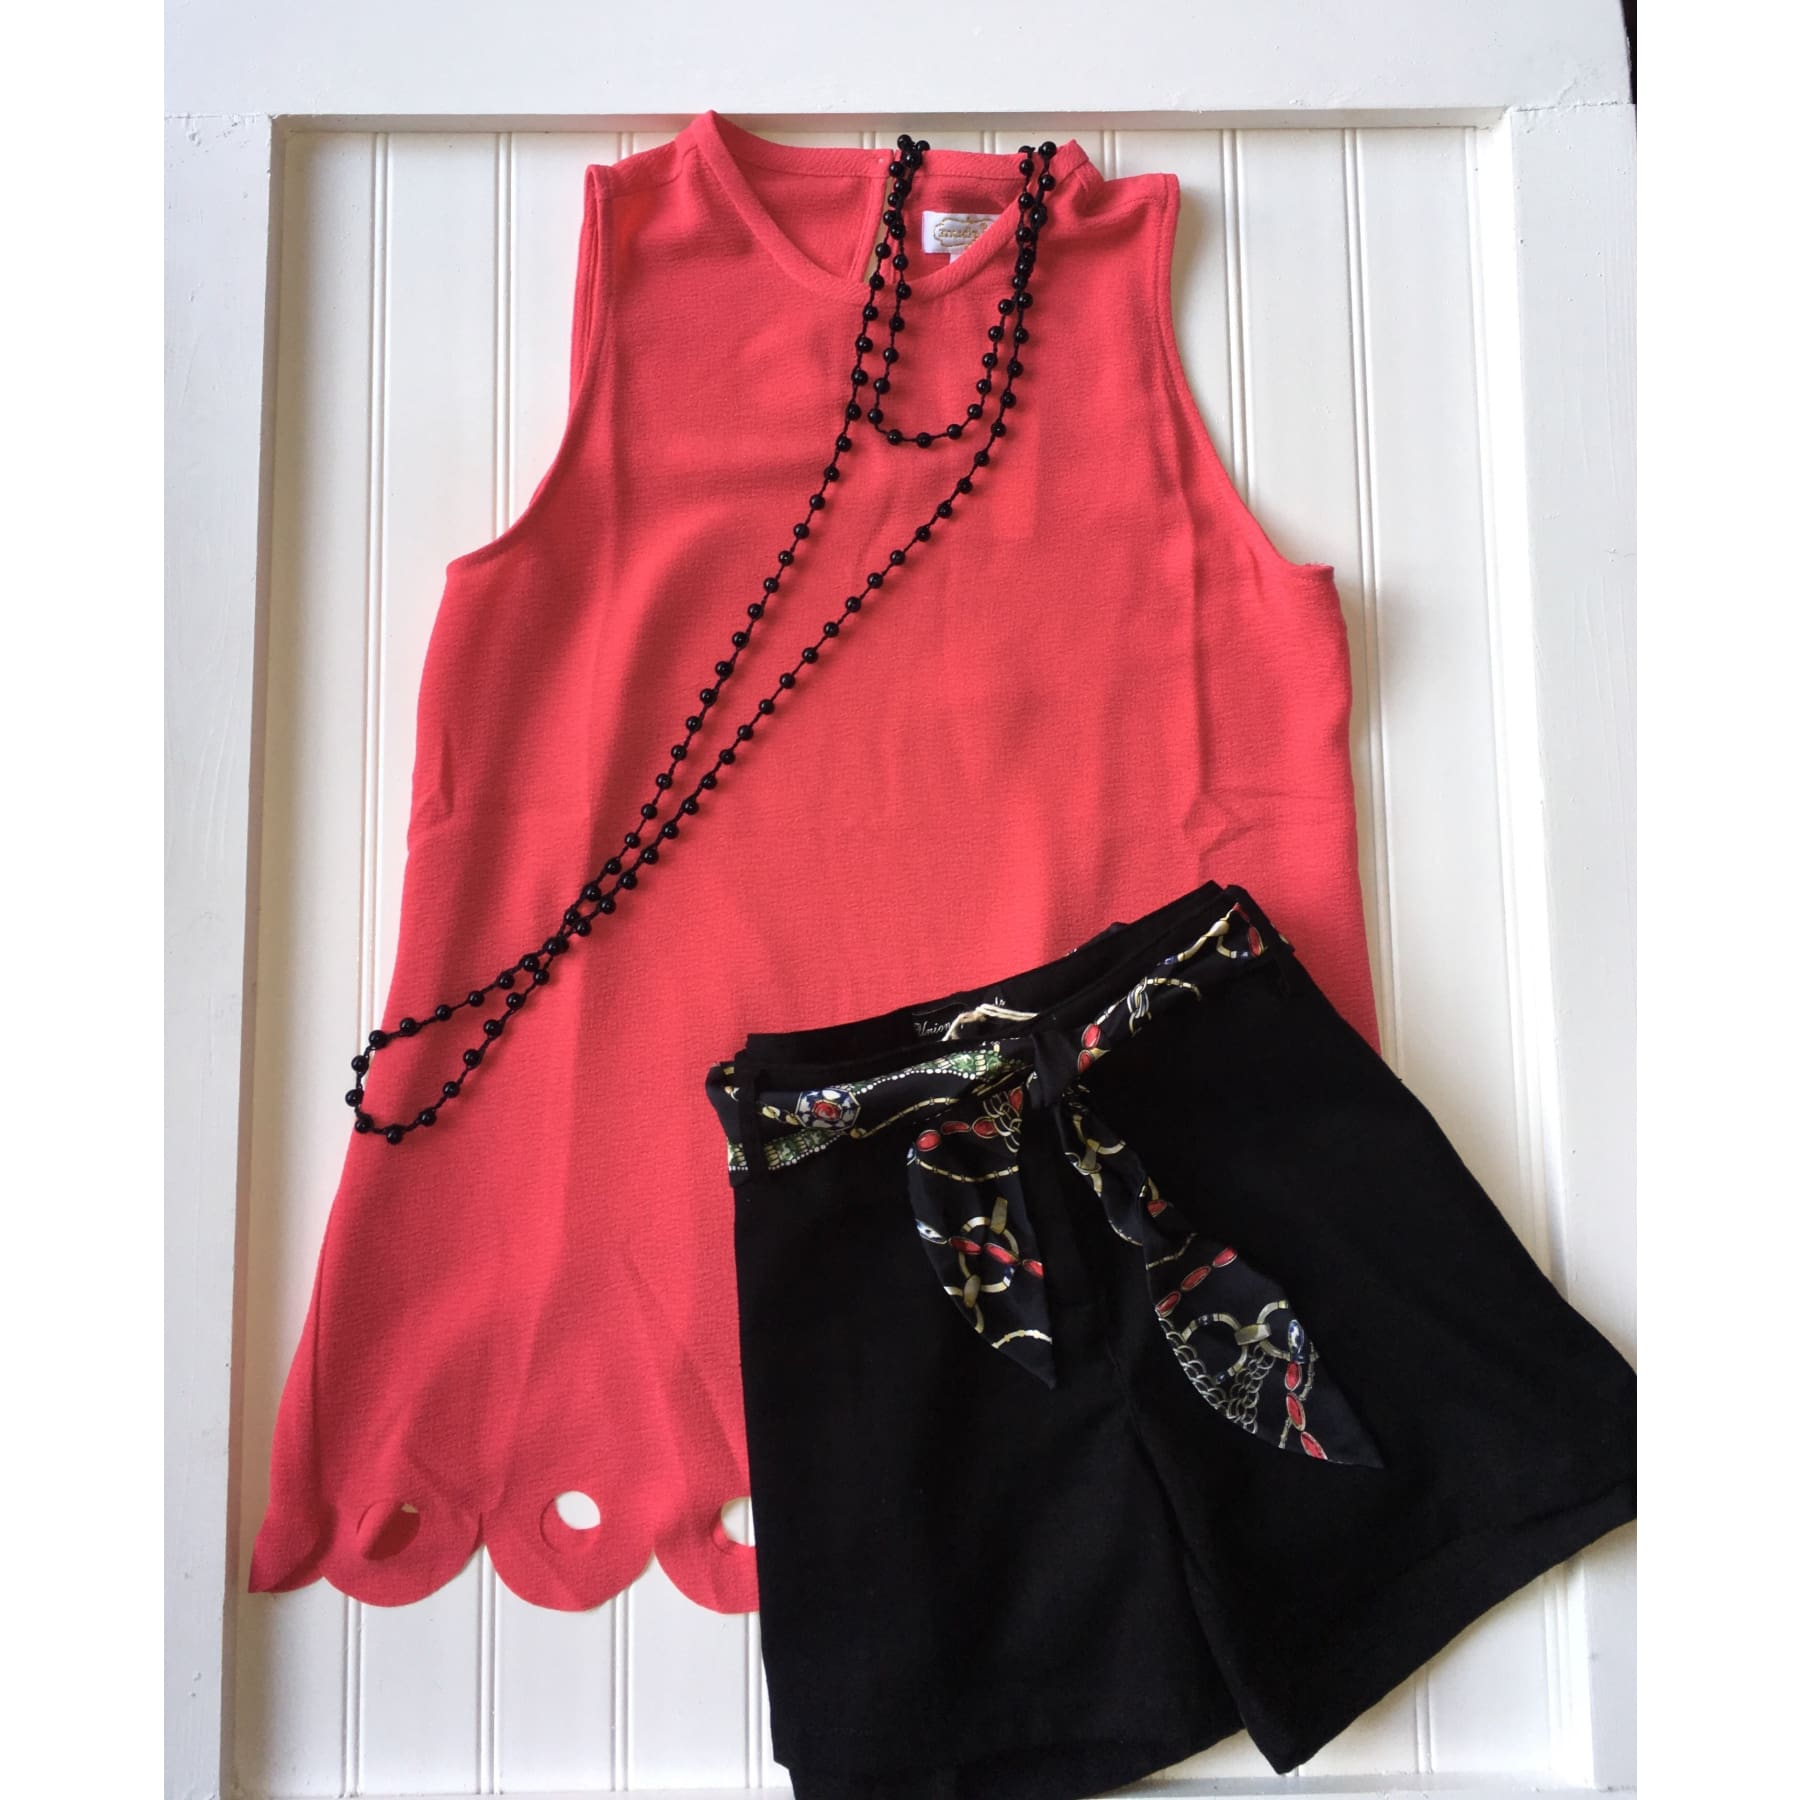 Coral Pink Scalloped Edge Sleeveless Top,Top - Dirt Road Divas Boutique